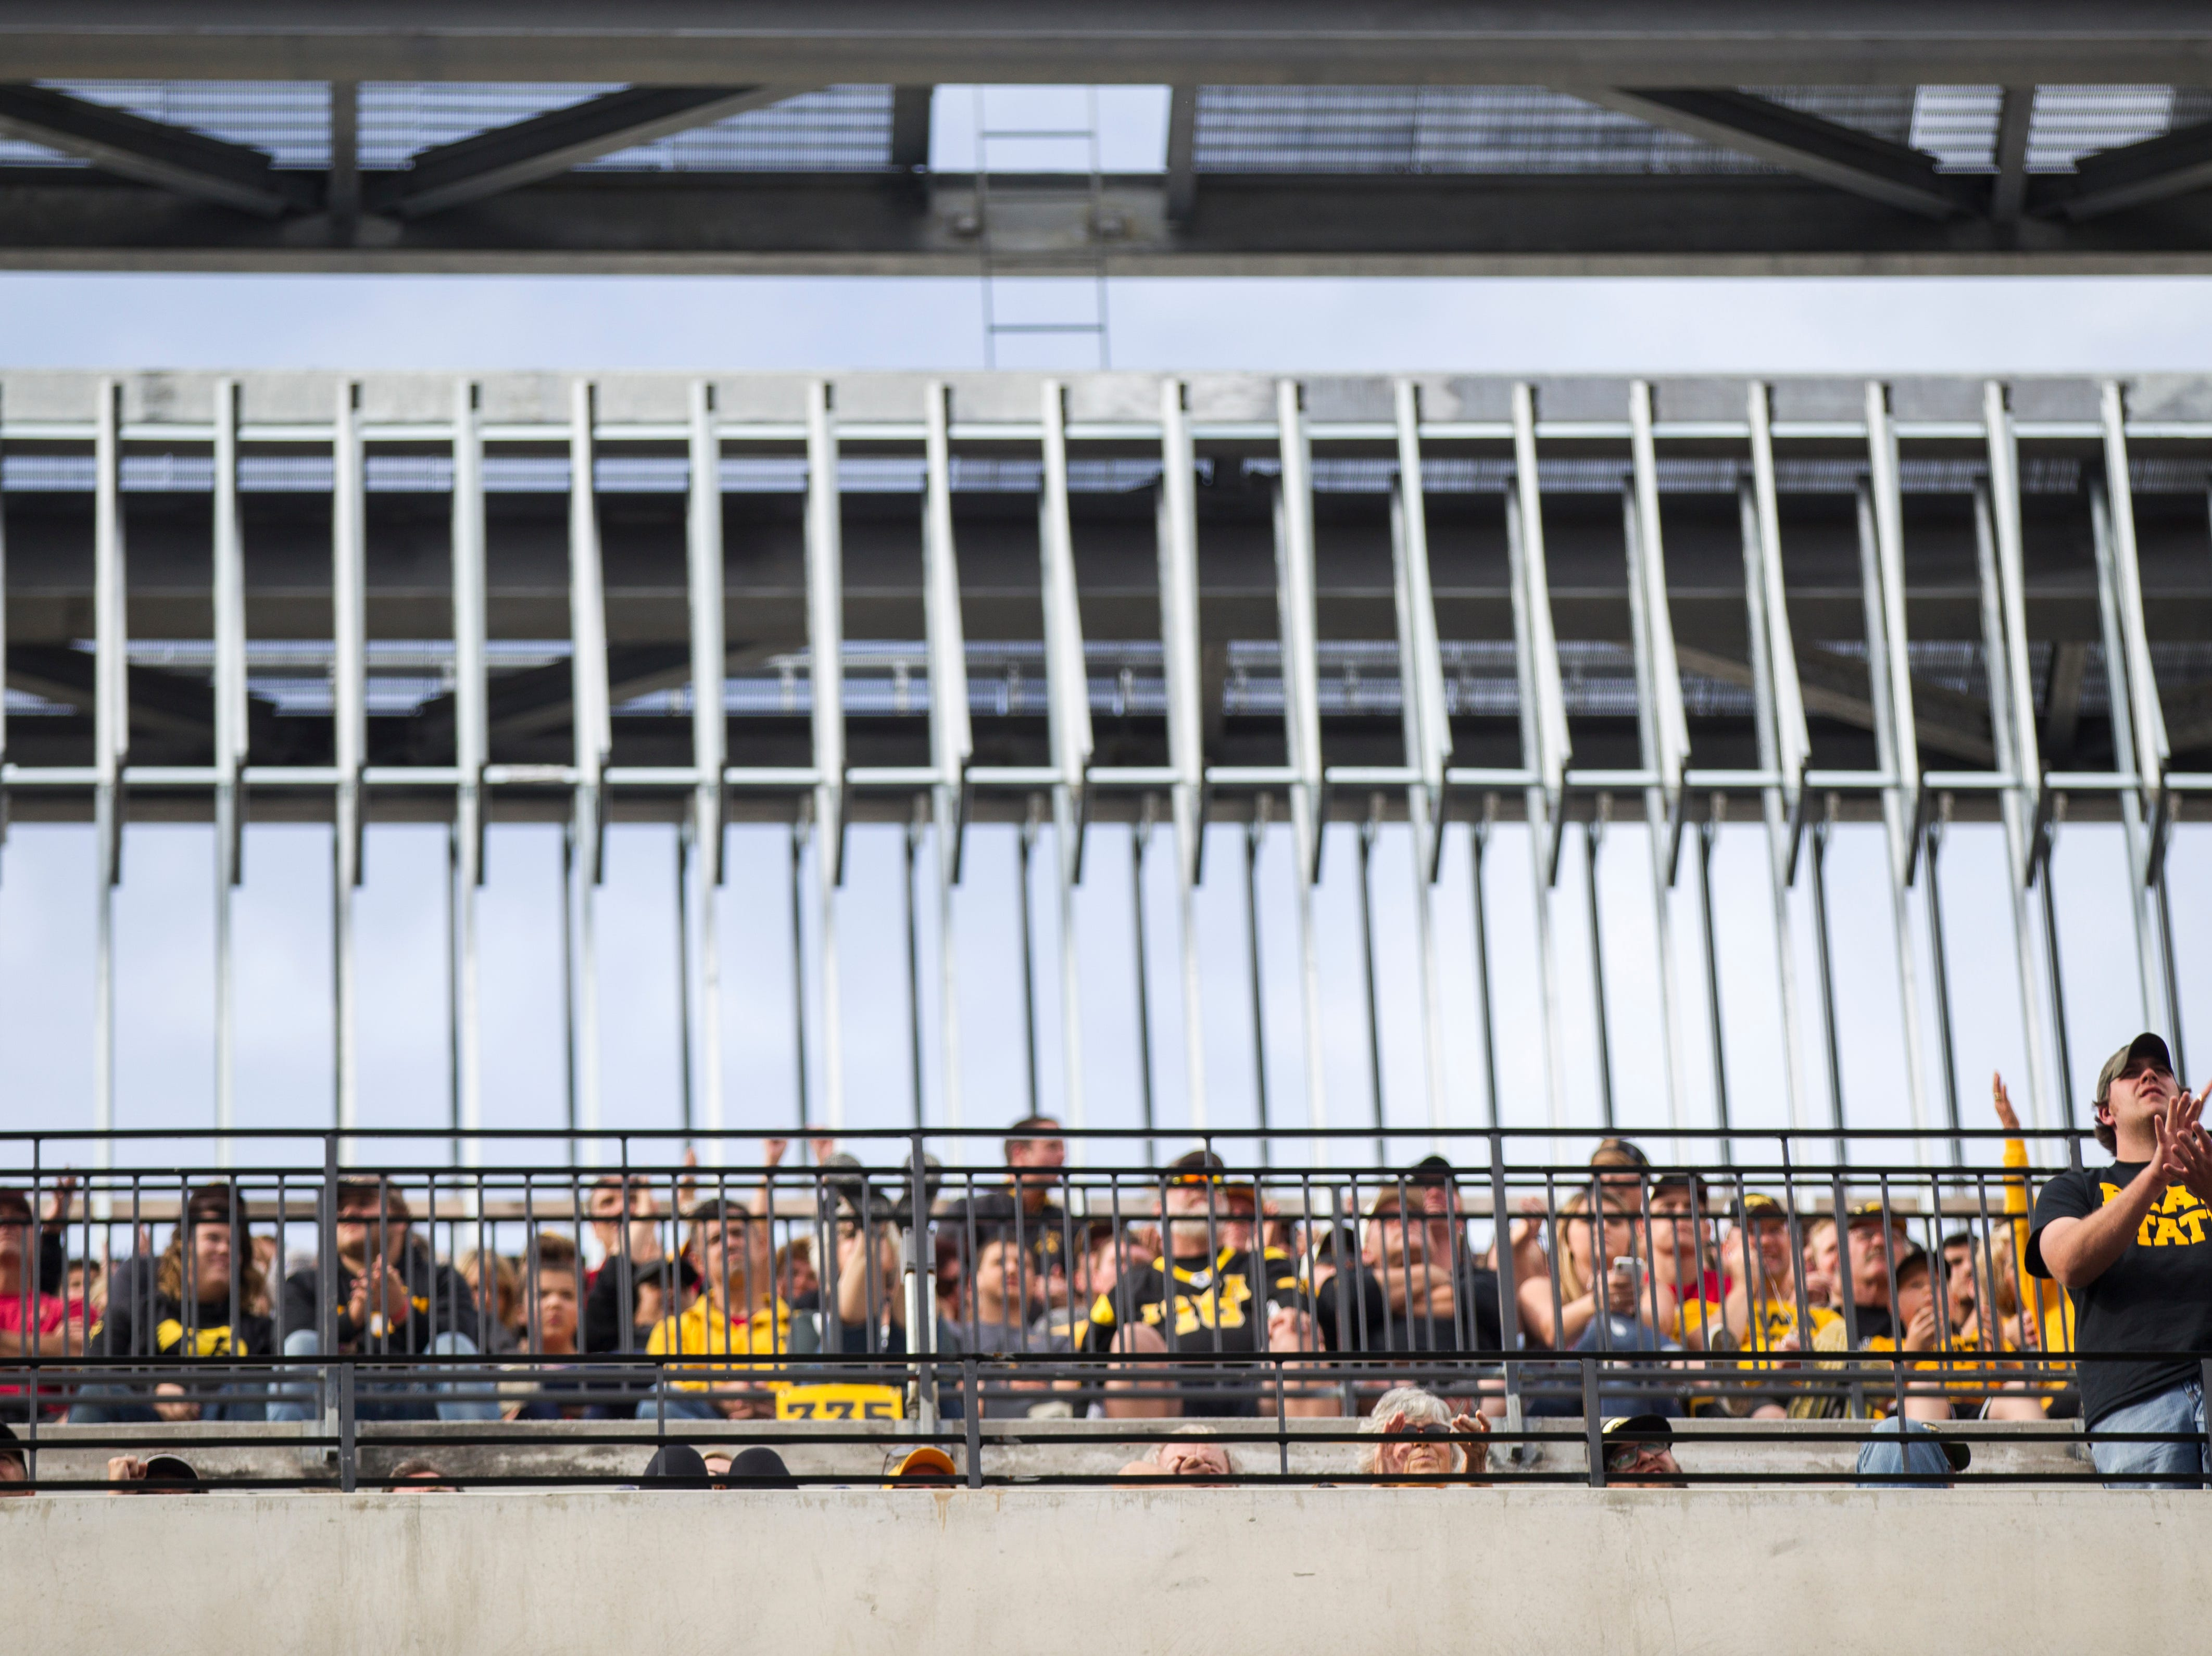 A fan in the upper deck of the north end zone cheers during the Cy-Hawk NCAA football game on Saturday, Sept. 8, 2018, at Kinnick Stadium in Iowa City.